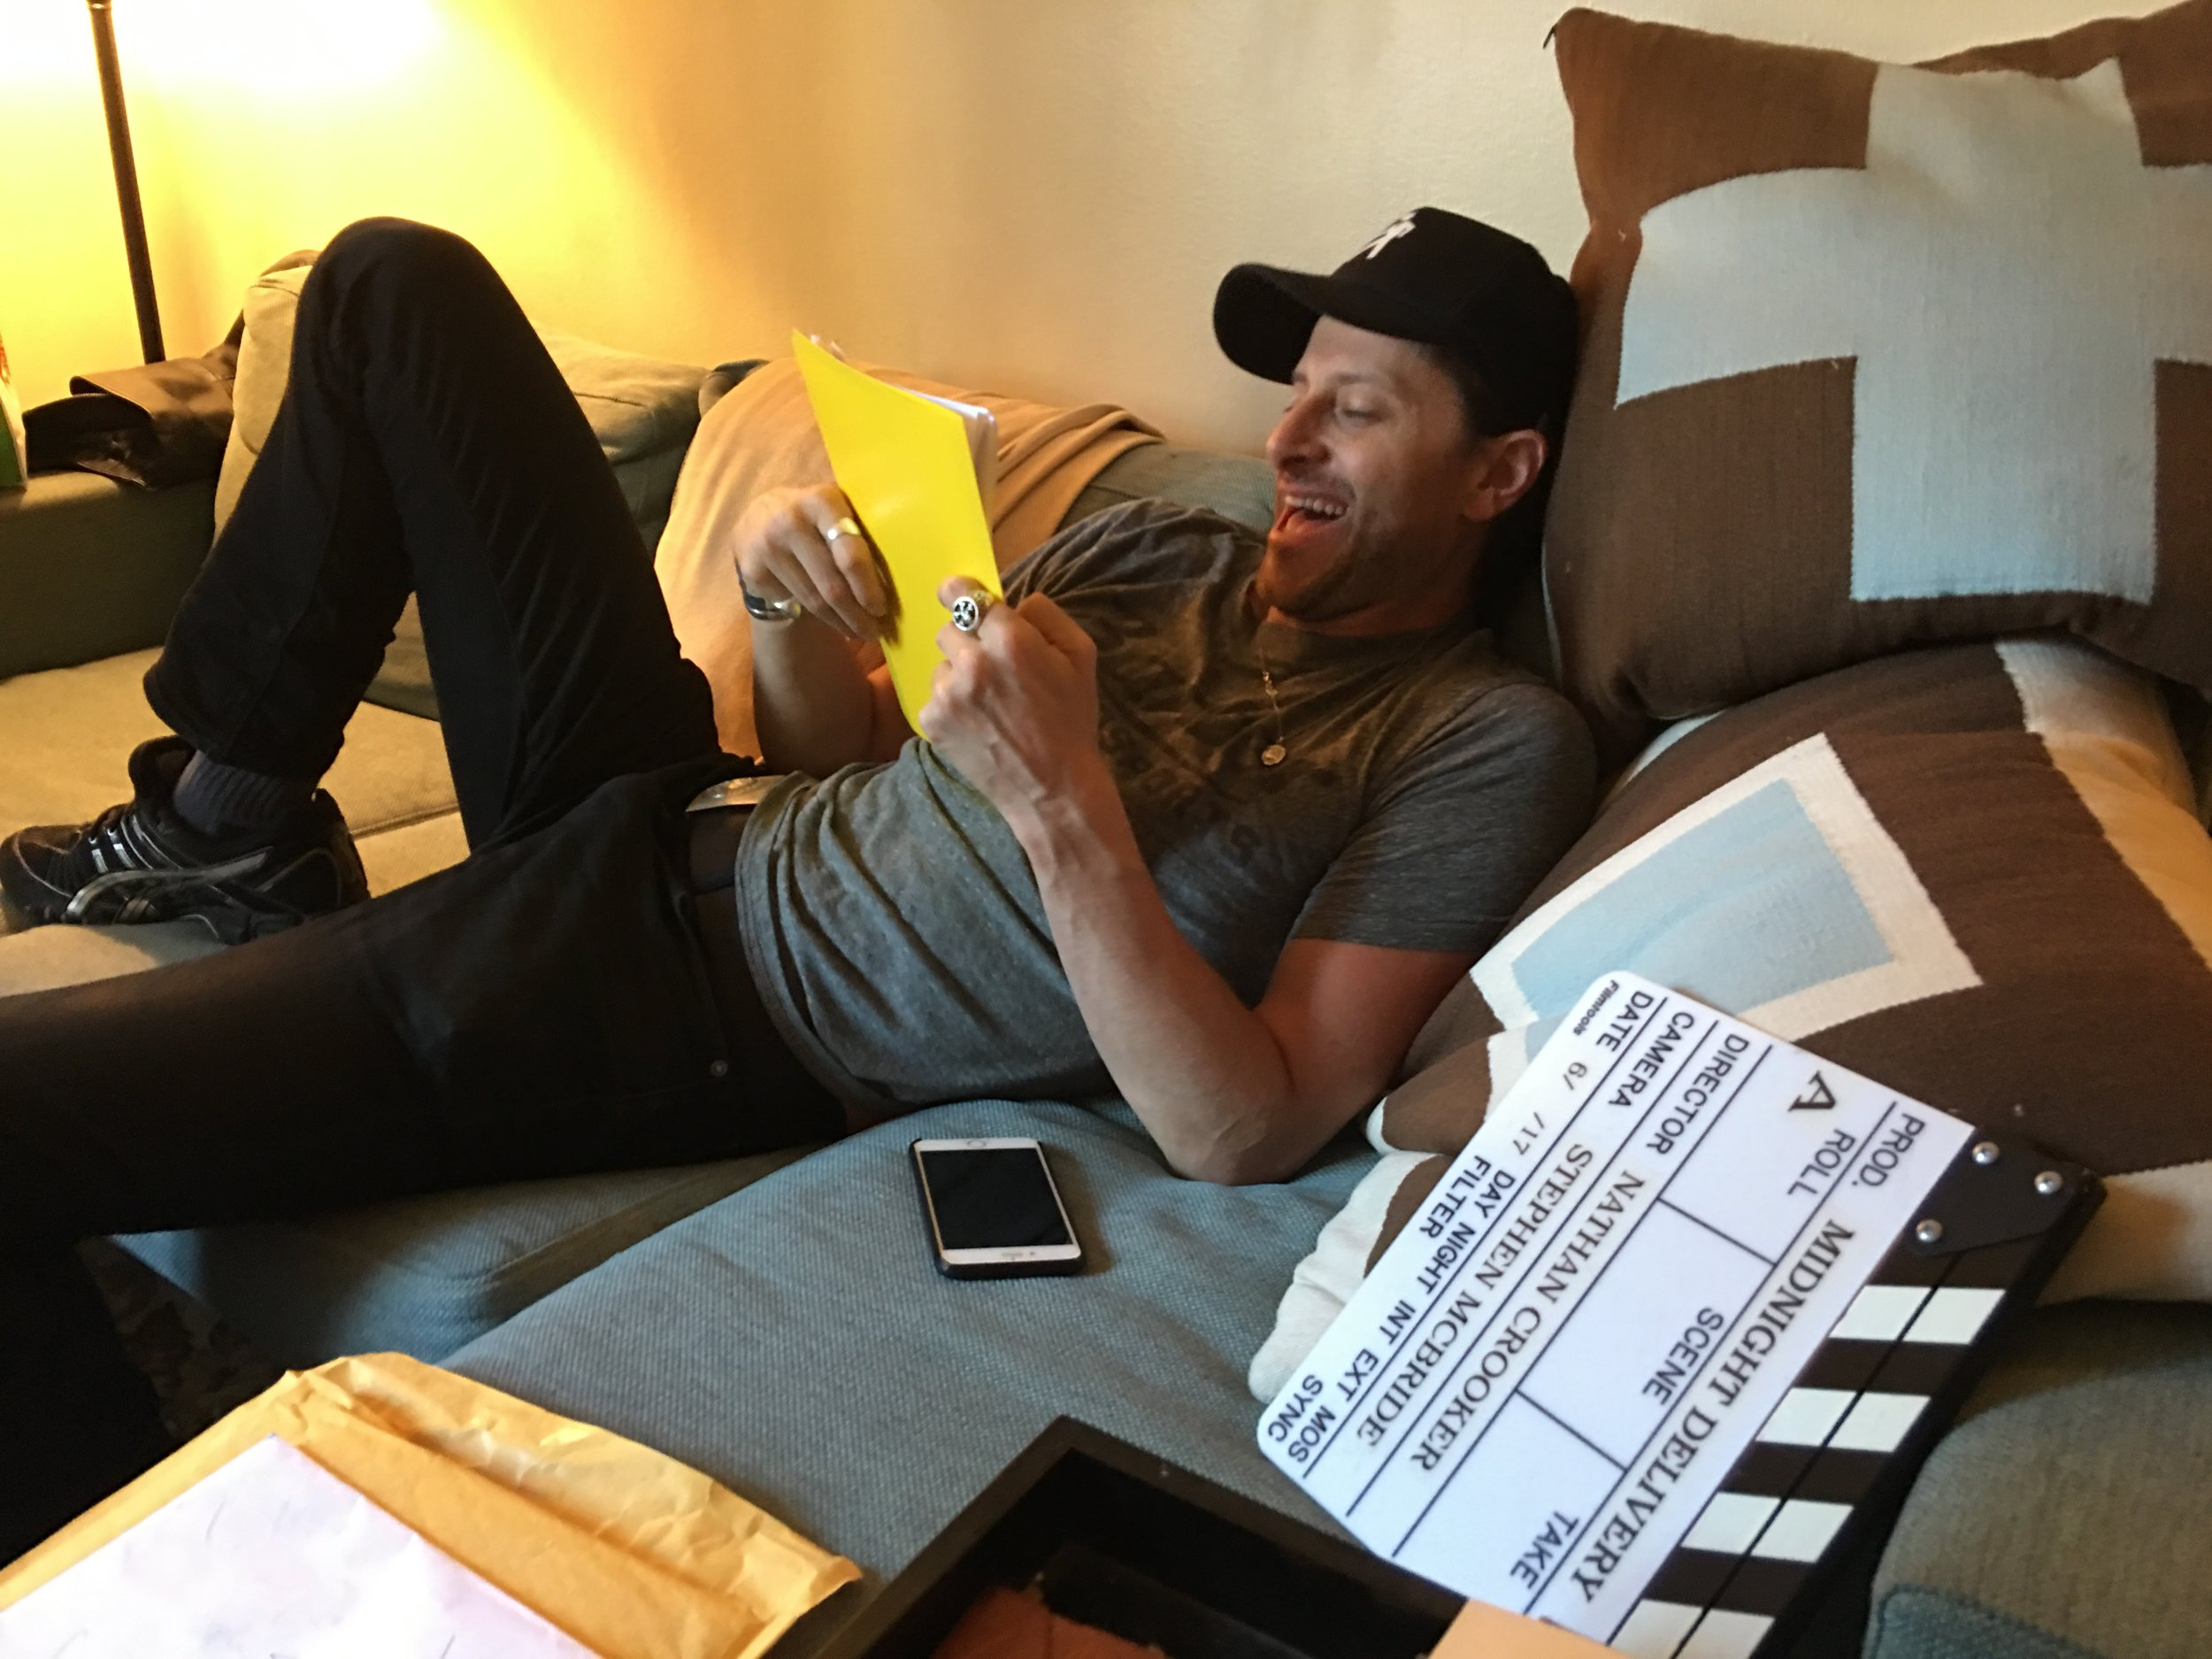 Director Nathan Crooker finds something funny in his horror script.